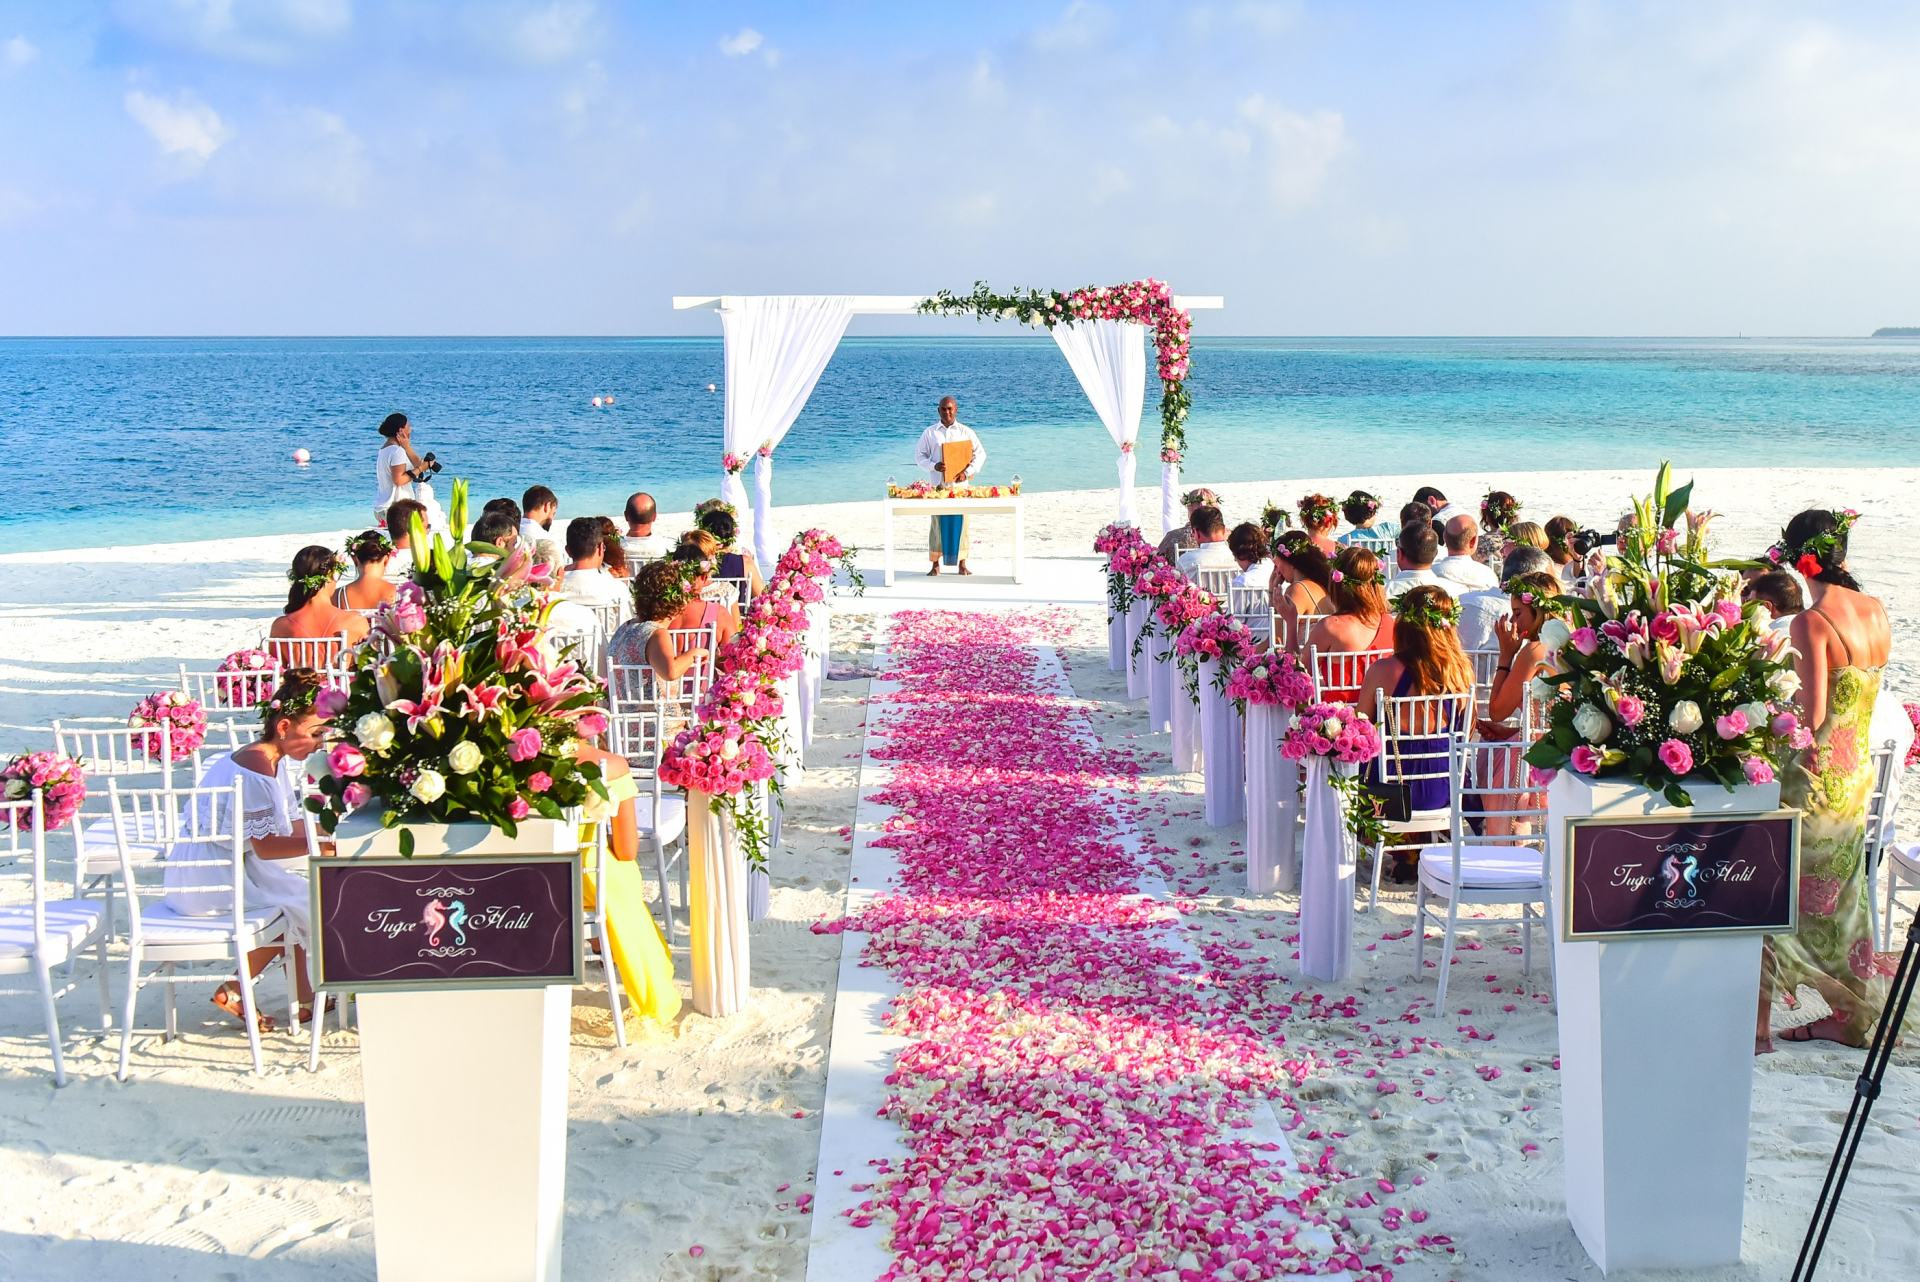 aisle-beach-celebration-169198.jpg